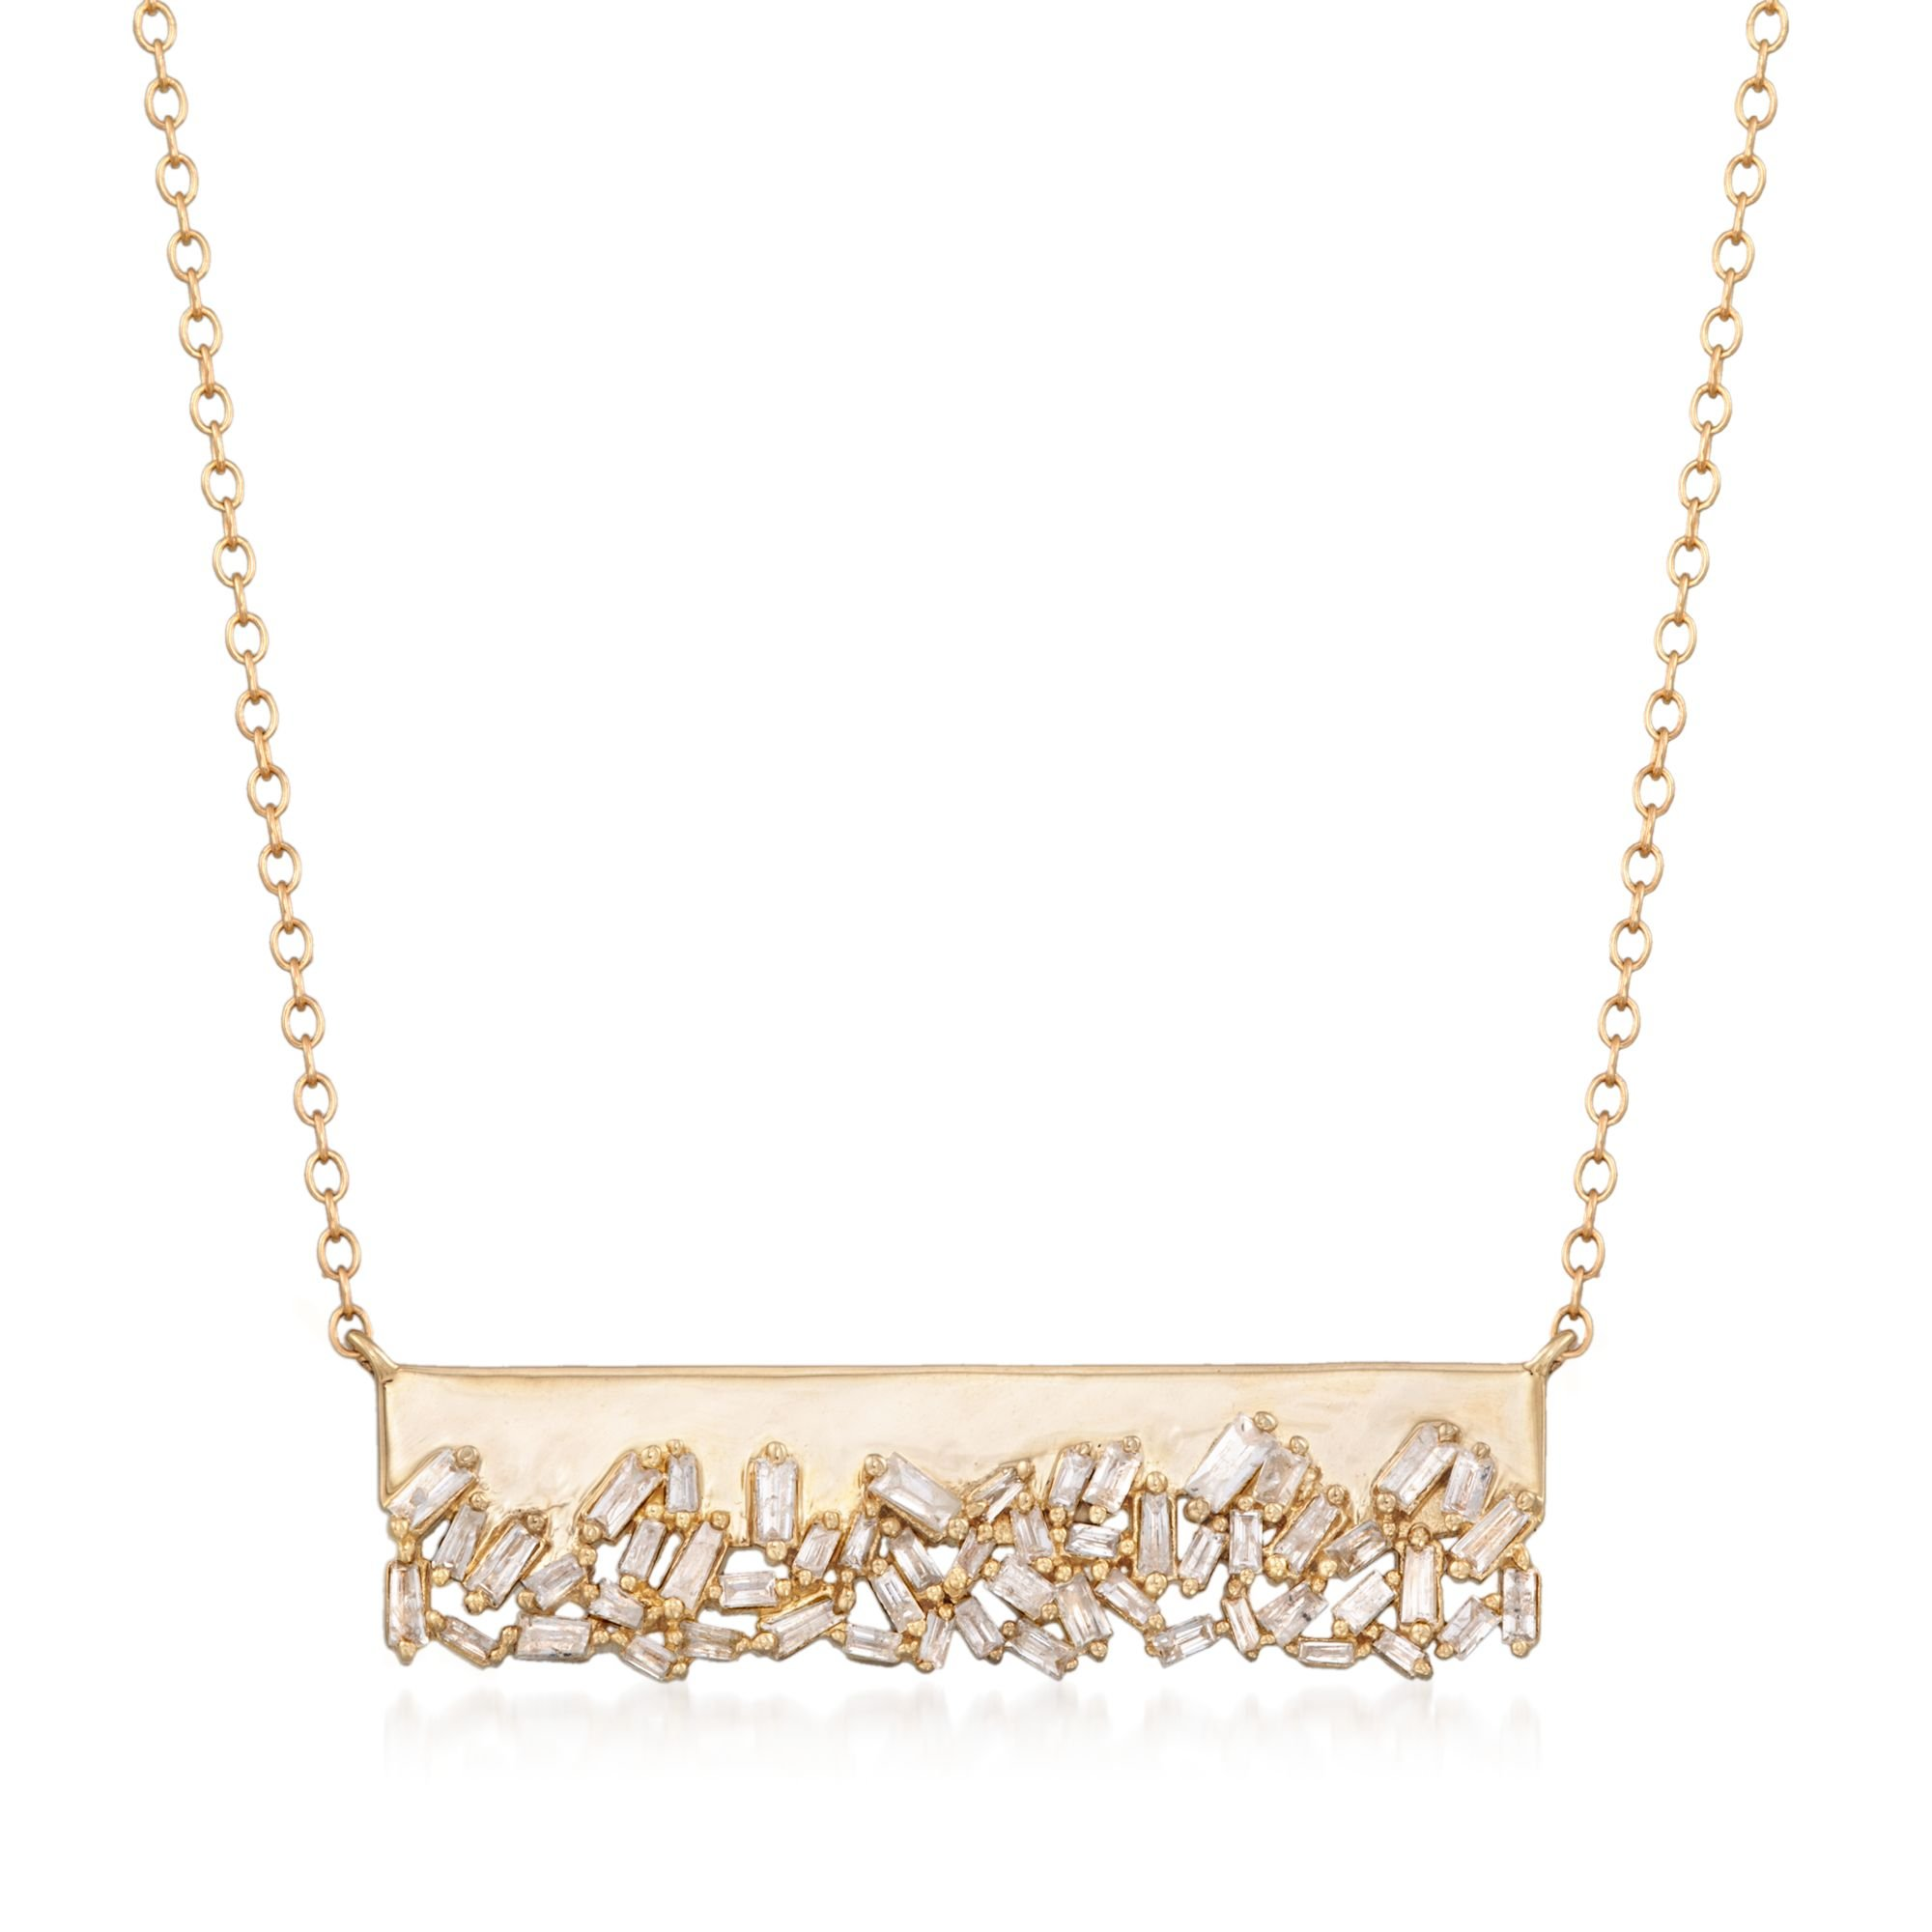 Ross-Simons .59 ct. t.w. Baguette Diamond Bar Necklace in 14kt Yellow Gold